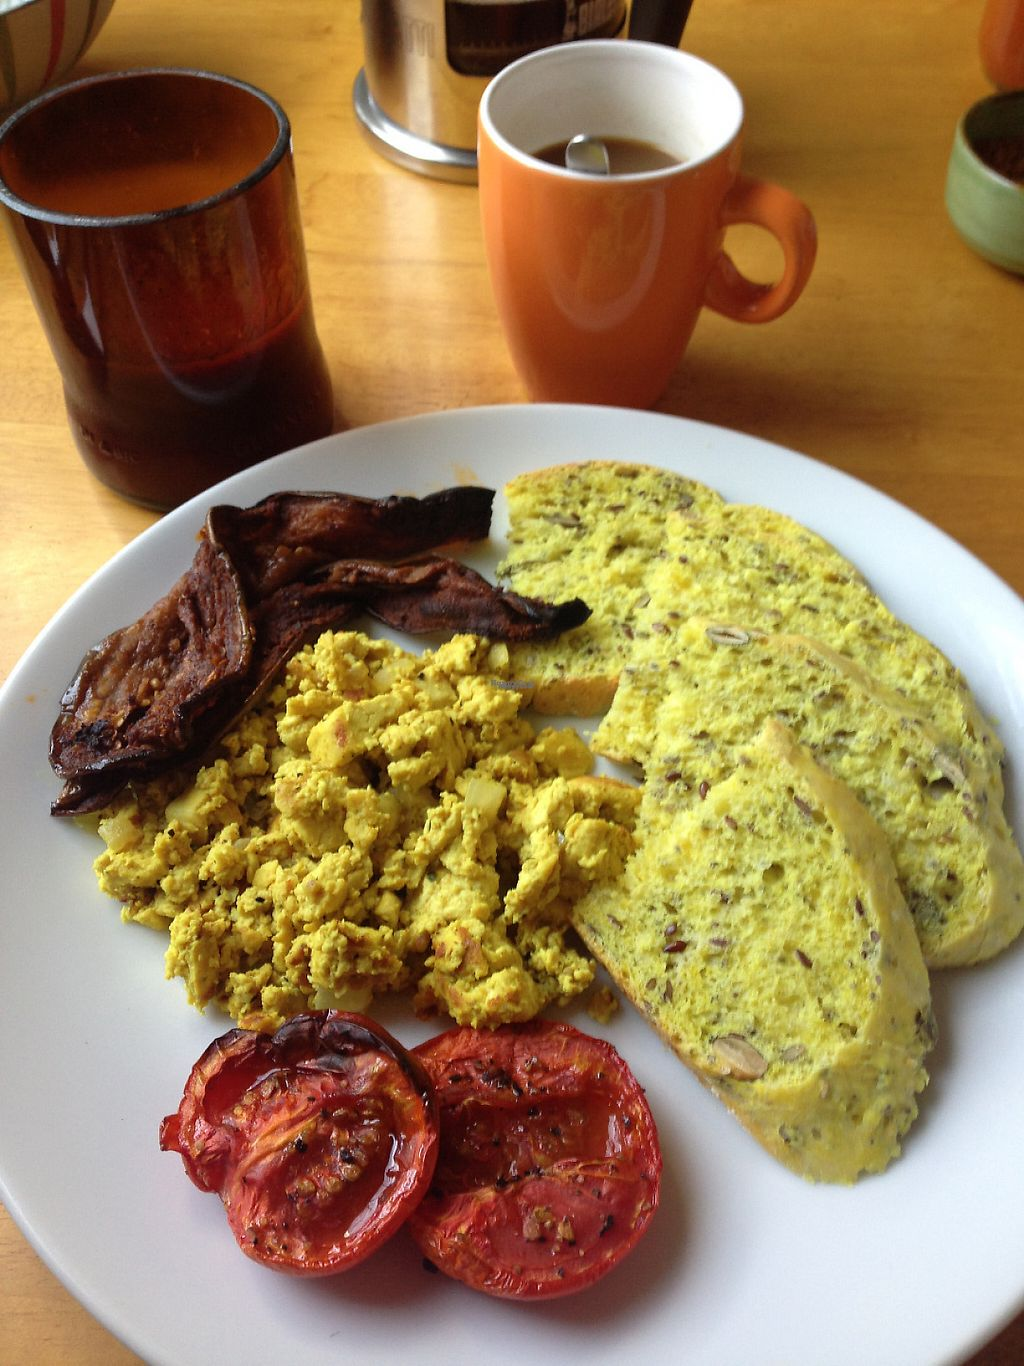 """Photo of Vegan Villa  by <a href=""""/members/profile/Stevie"""">Stevie</a> <br/>A small part of vegan breakfast <br/> February 14, 2017  - <a href='/contact/abuse/image/83088/226433'>Report</a>"""